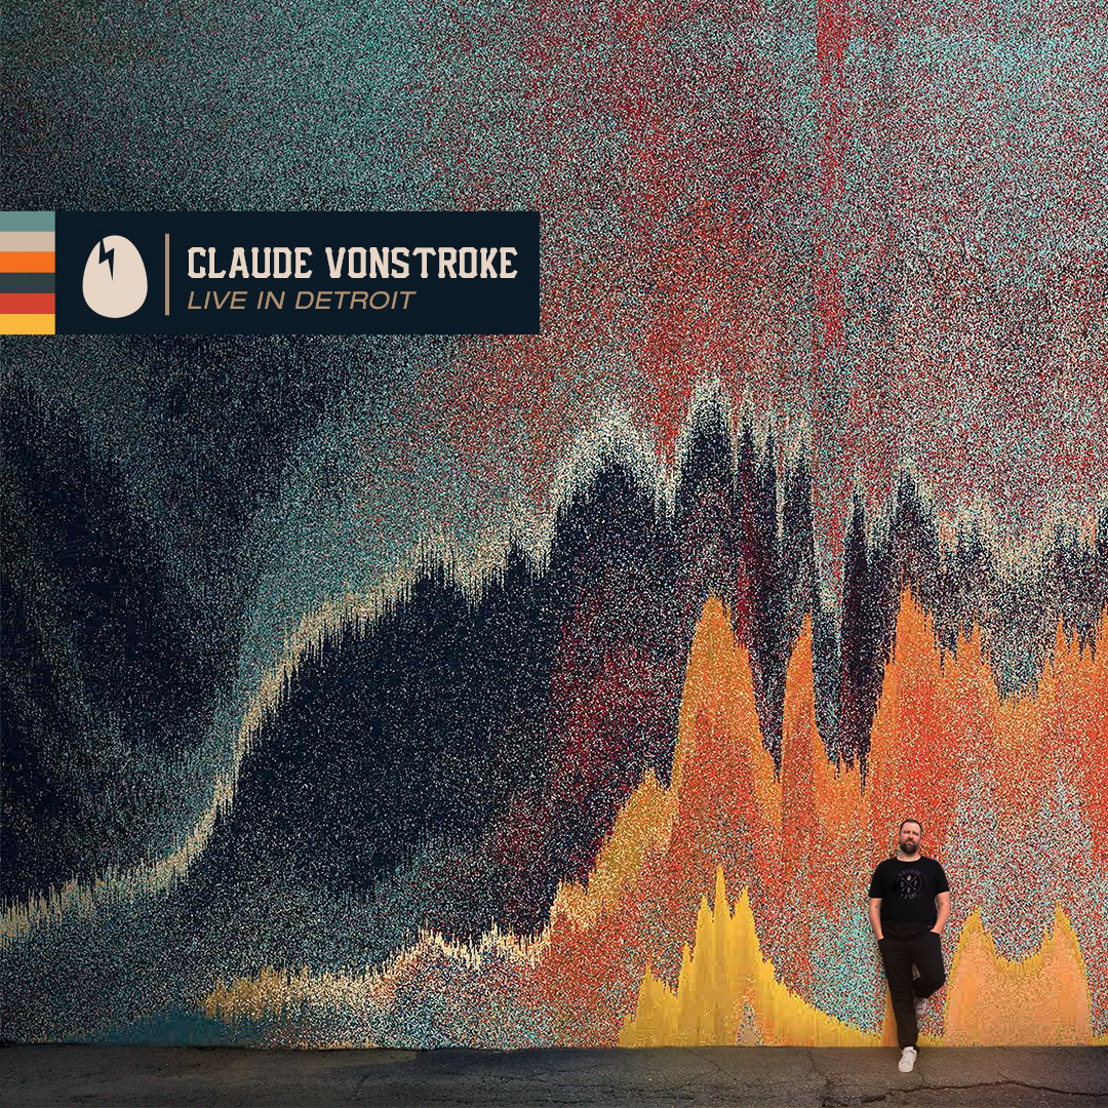 Claude VonStroke To Release 'Claude VonStroke: Live in Detroit' Album June 22